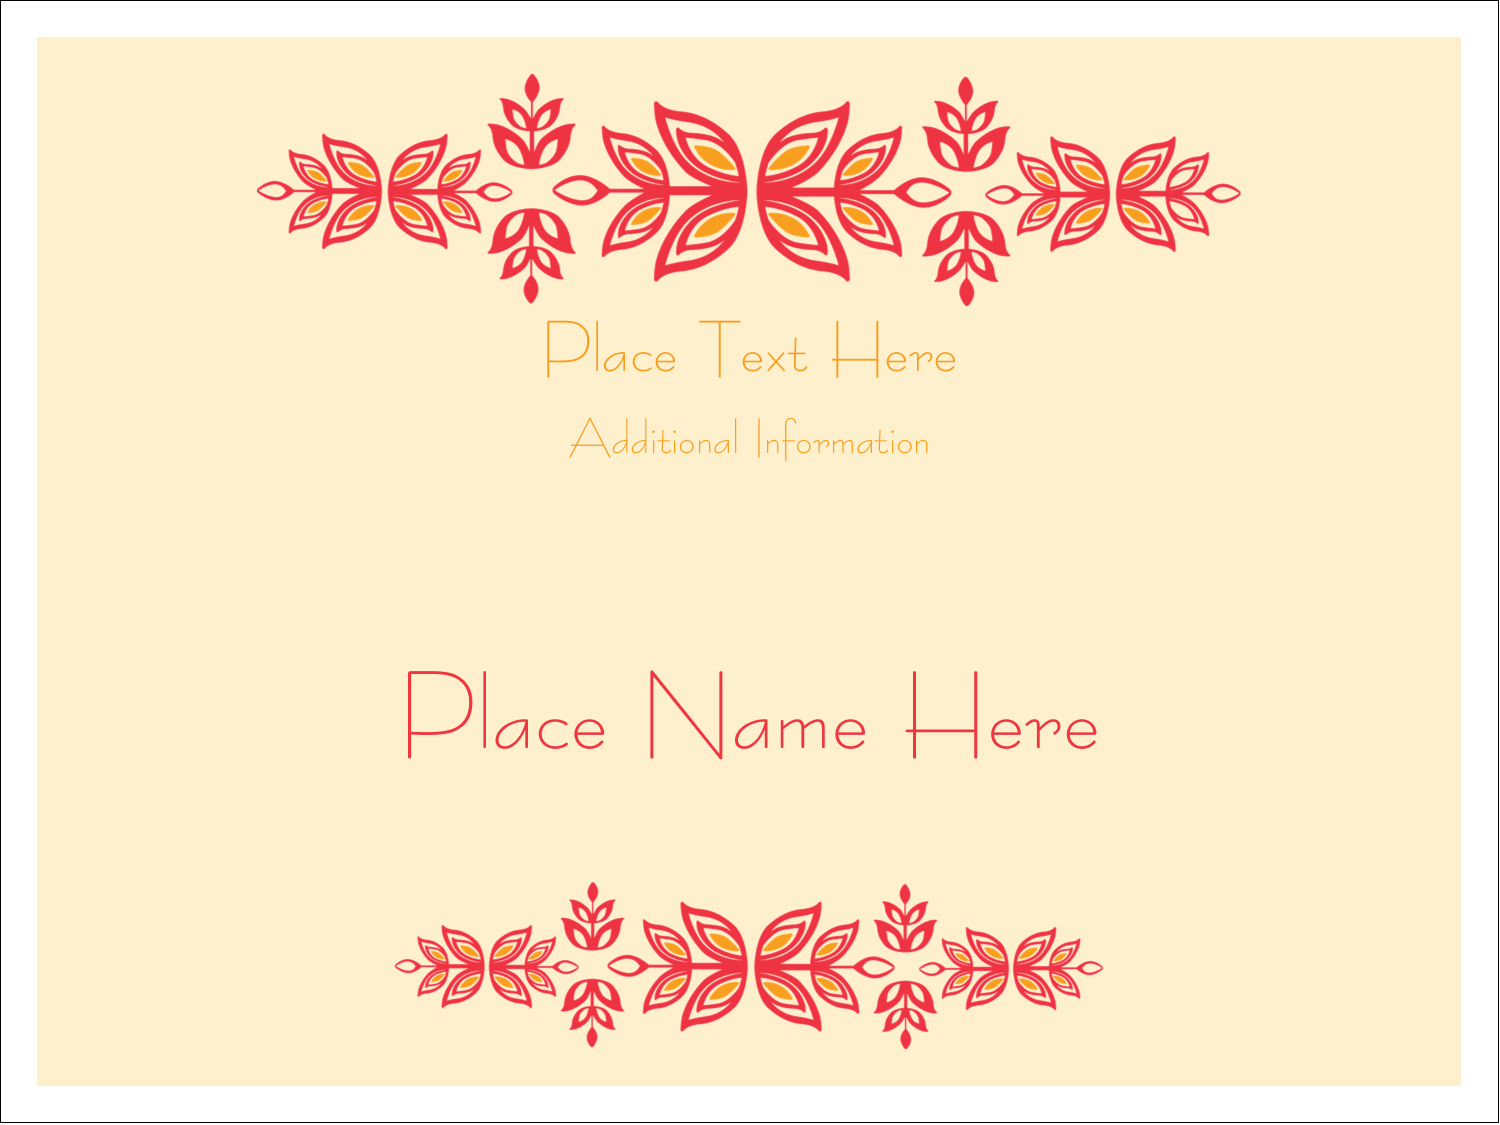 Delight clients and friends with projects using pre-designed Sprig of Summer templates.